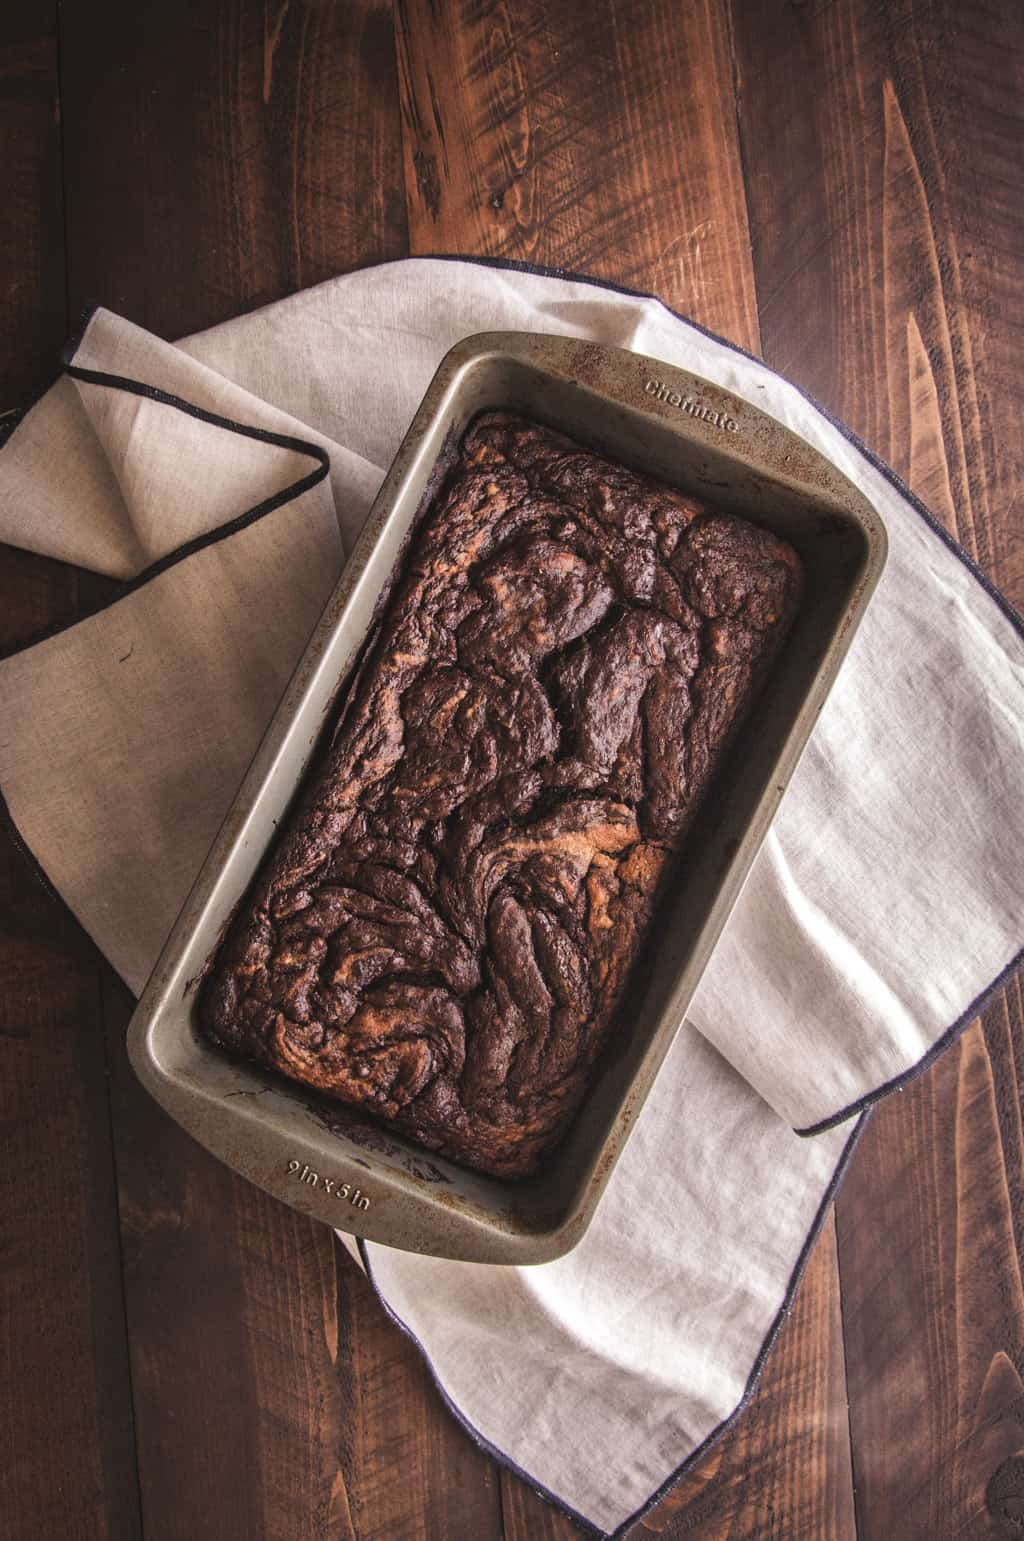 Zucchini banana nutella swirl loaf recipe from @sweetphi